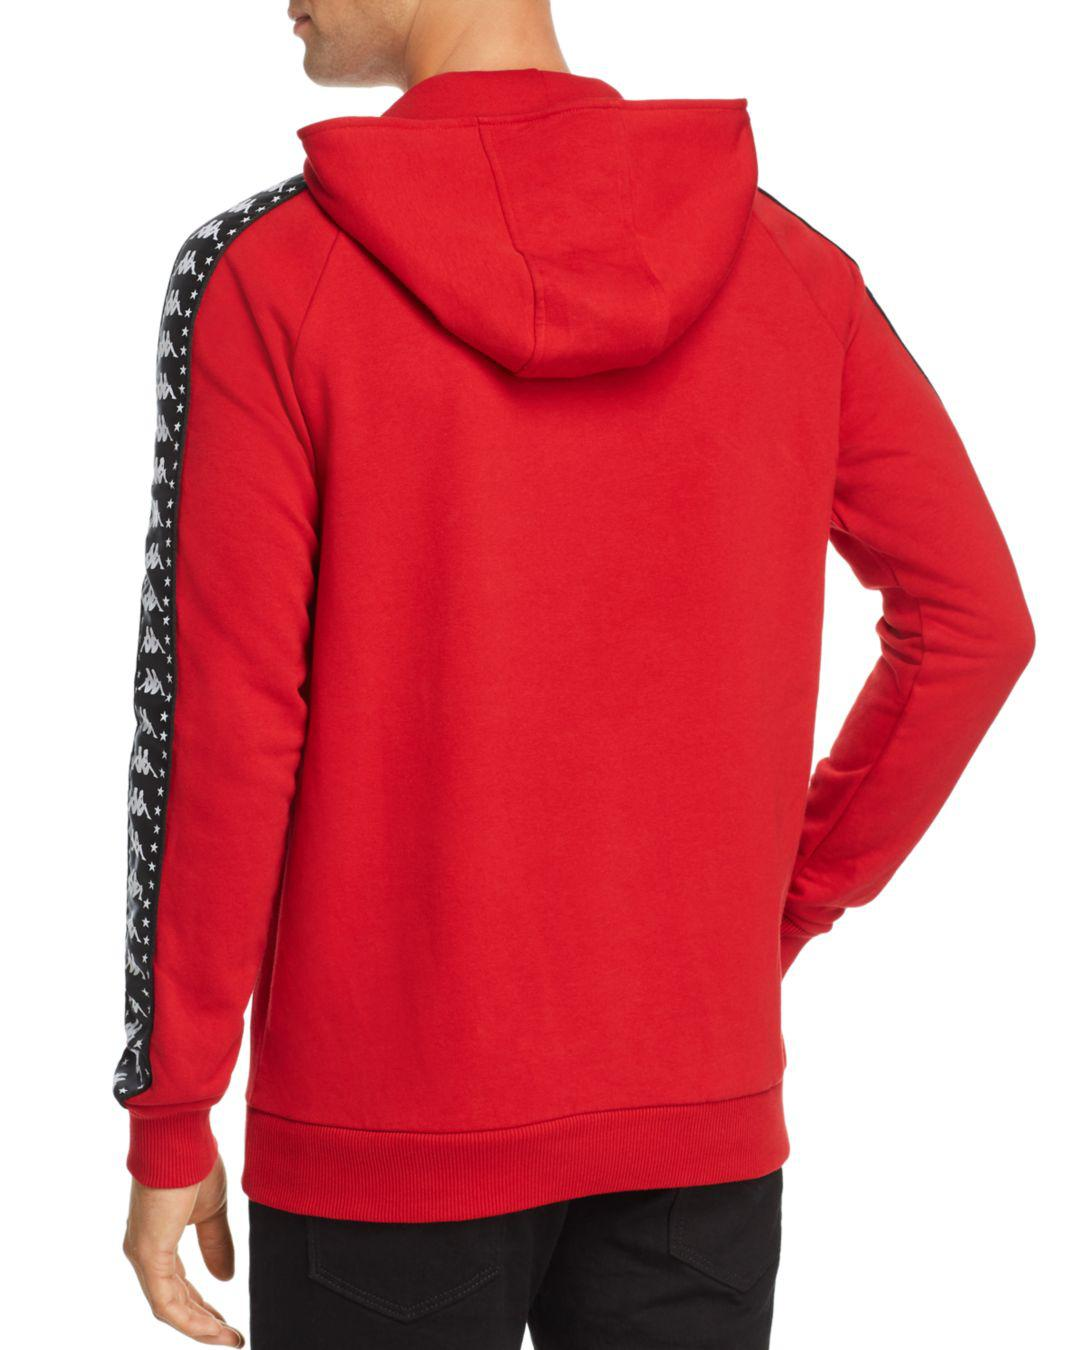 9e662809c300 Kappa Authentic Bzaleh Embossed-logo Hooded Sweatshirt in Red for Men - Lyst